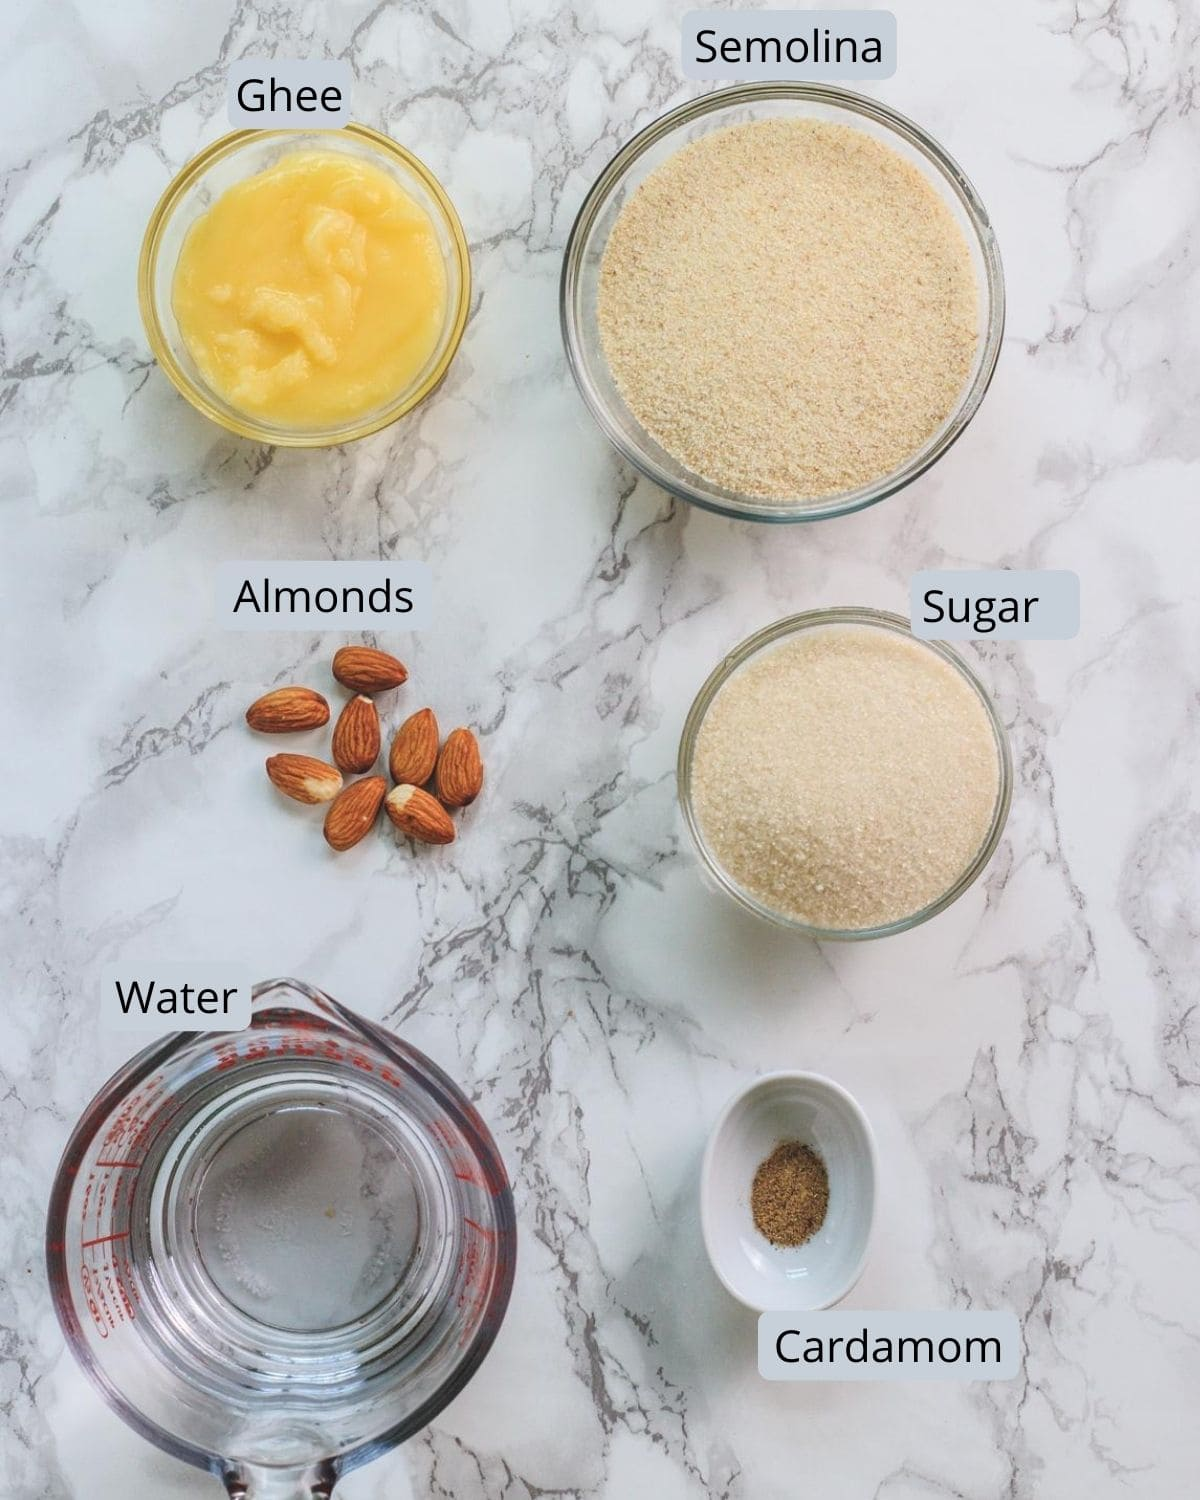 Image of ingredients used in rava sheera. Includes semolina, sugar, ghee, water, almonds, cardamom.